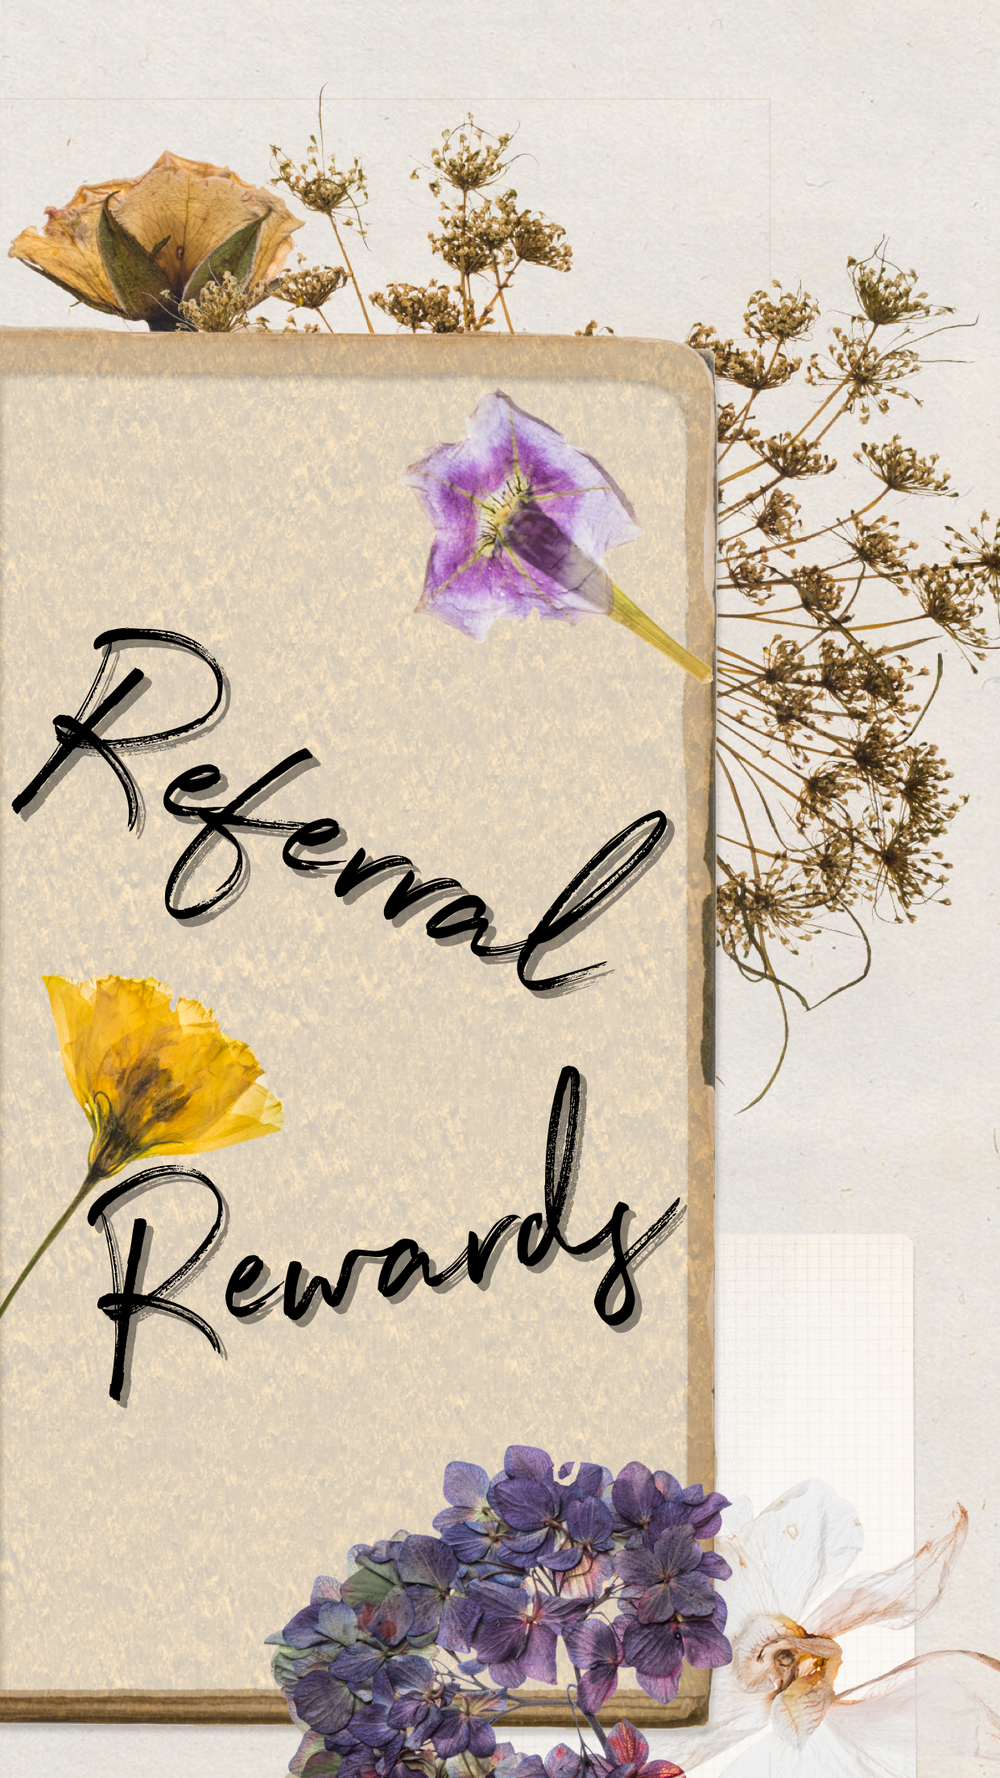 Referral Rewards - I love Referrals so much that I want to reward you for it! 💰For every single person that you send to me, you will get $30 towards services. You will get a postcard in the mail, do not lose that card, treat it like cash and bring it to me next time you get your hair done.Your Referral will have the option of $20 off their first visit or my New Client Special! Feel free to give out my number, email or website! ☺️